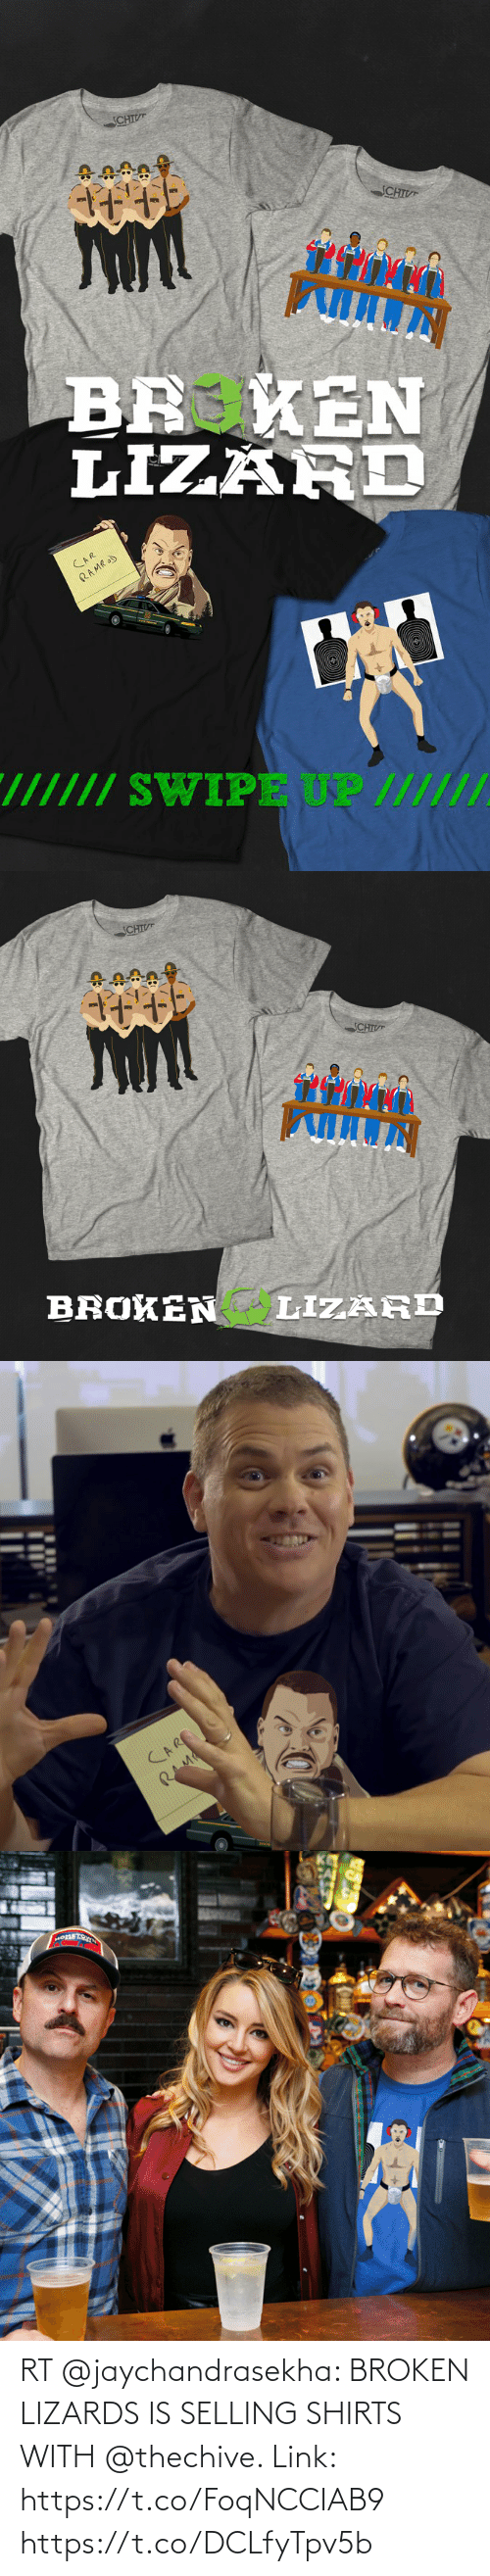 broken: RT @jaychandrasekha: BROKEN LIZARDS IS SELLING SHIRTS WITH @thechive. Link: https://t.co/FoqNCCIAB9 https://t.co/DCLfyTpv5b